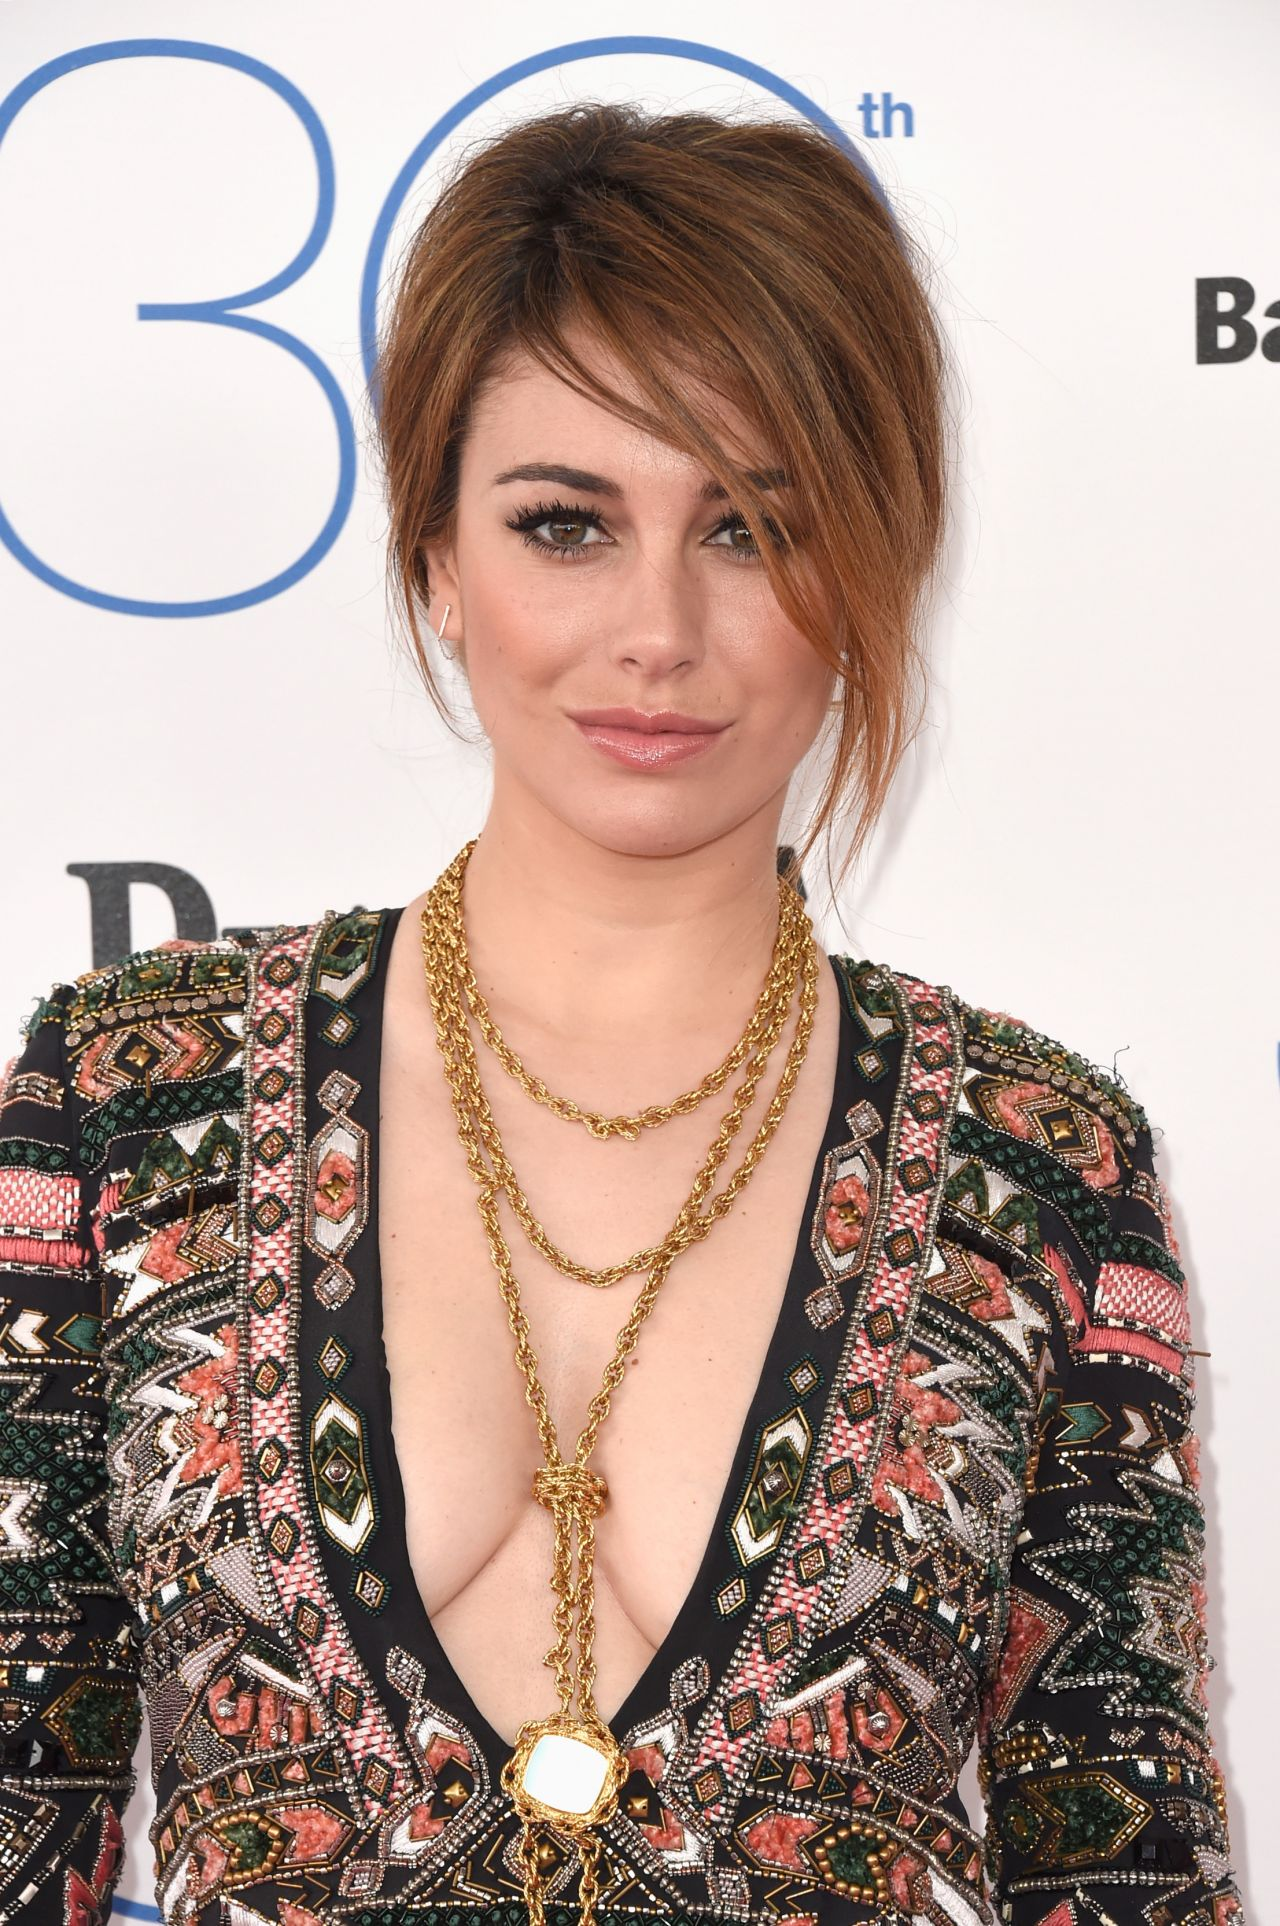 Blanca Suarez - 2015 Film Independent Spirit Awards in Santa Monica